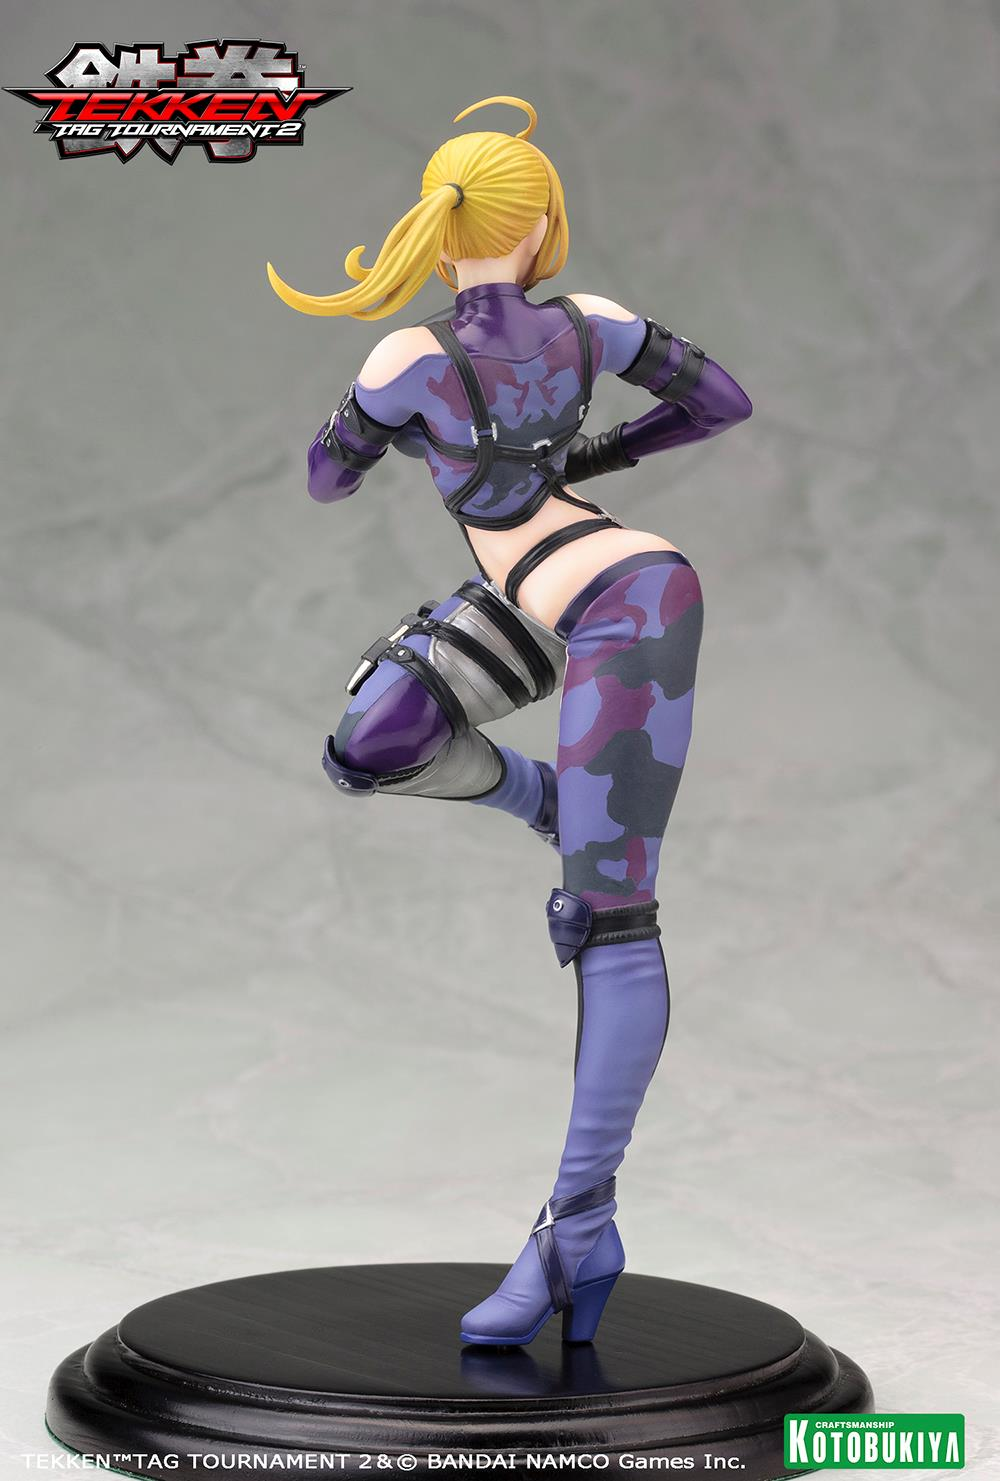 nina-williams-tekken-tournament-2-bishoujo-statue-3